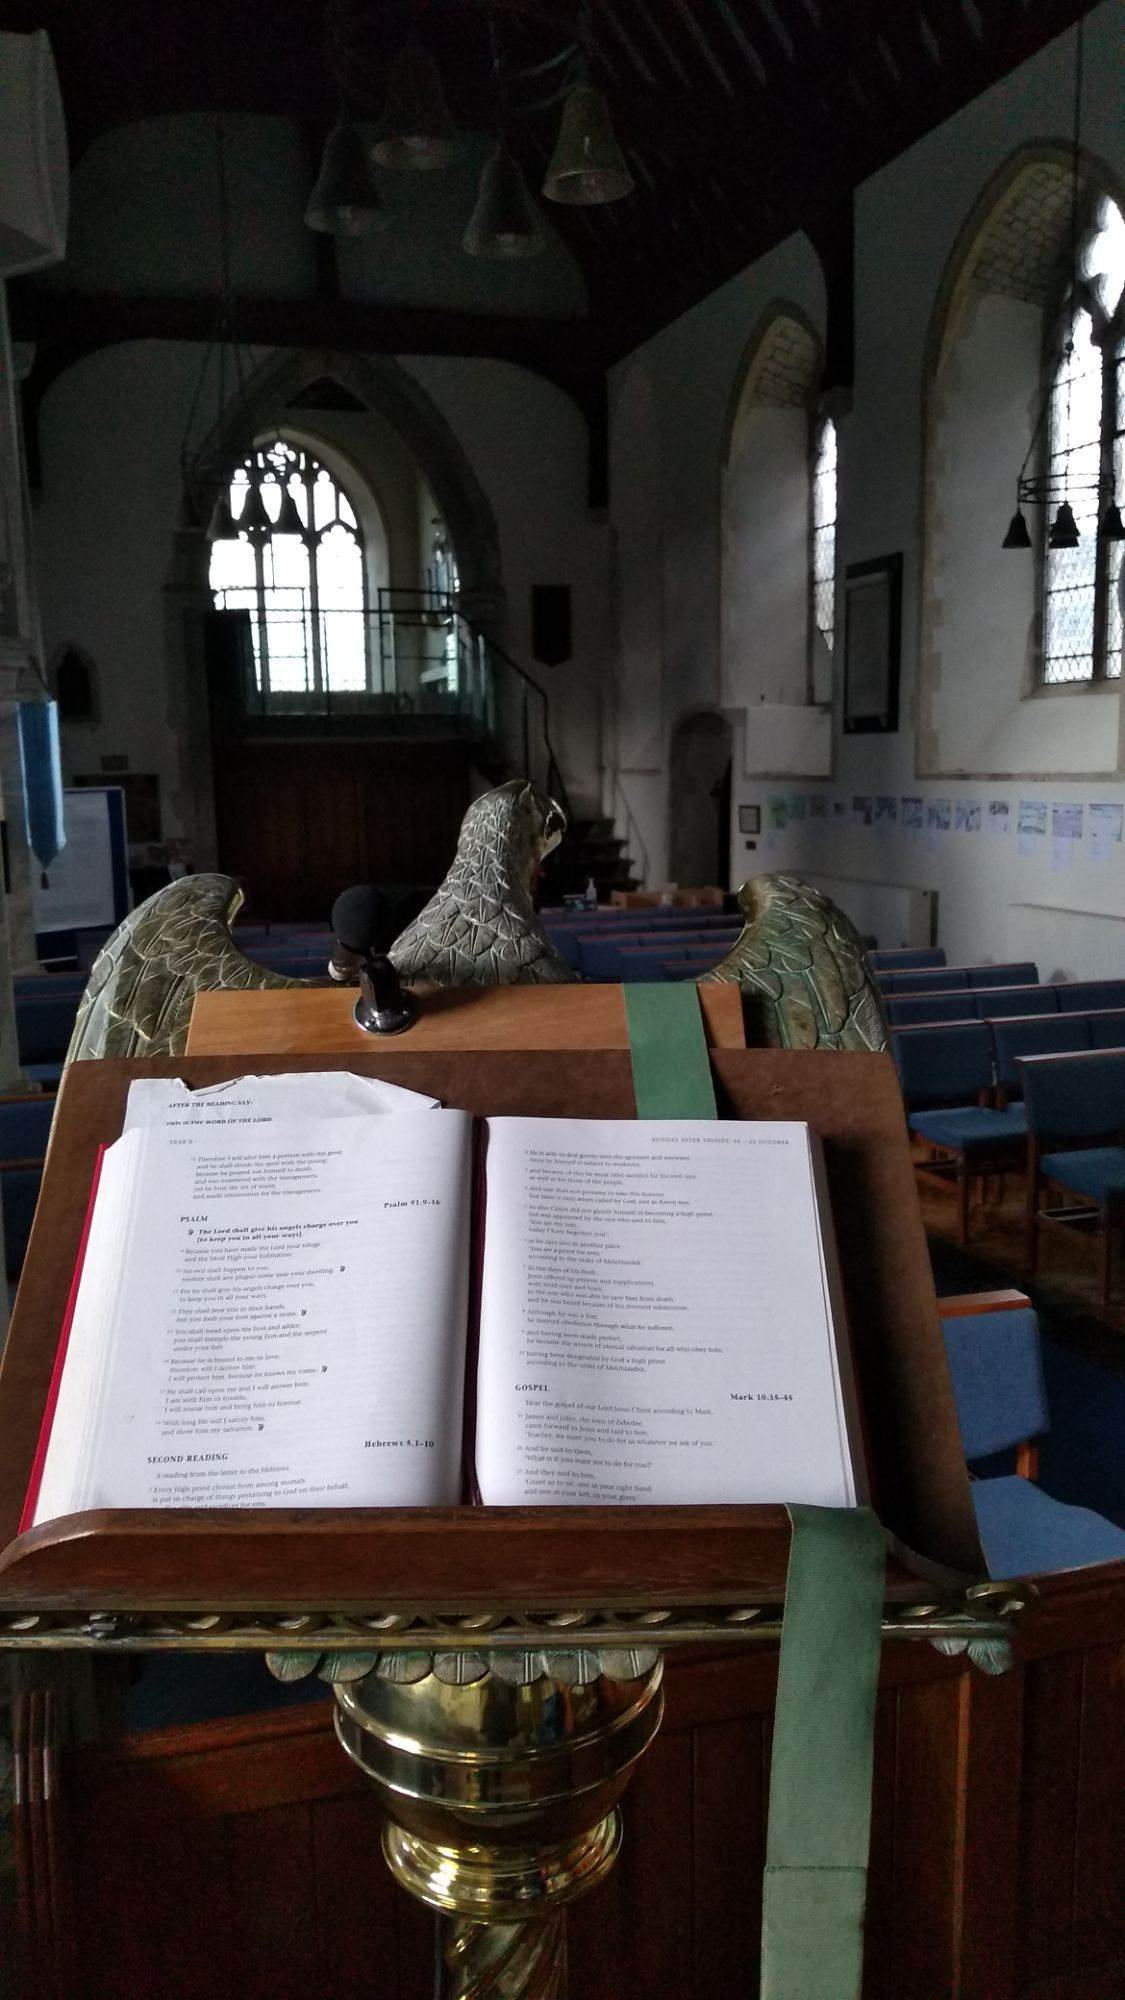 Bible on lectern